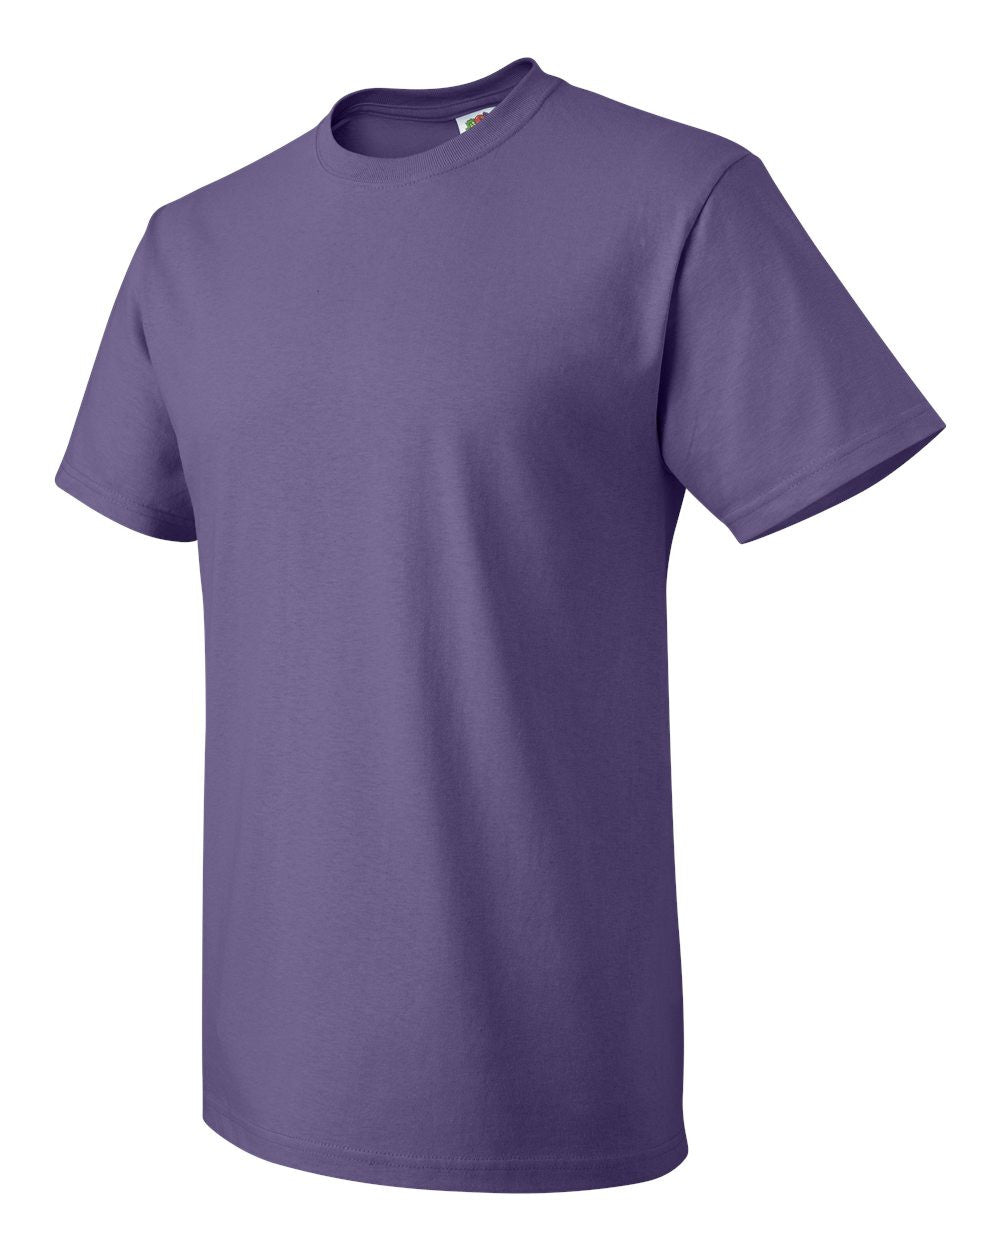 10 pack t-shirts by Fruit of the loom - Choice over 50 colors - Discountedrack.com